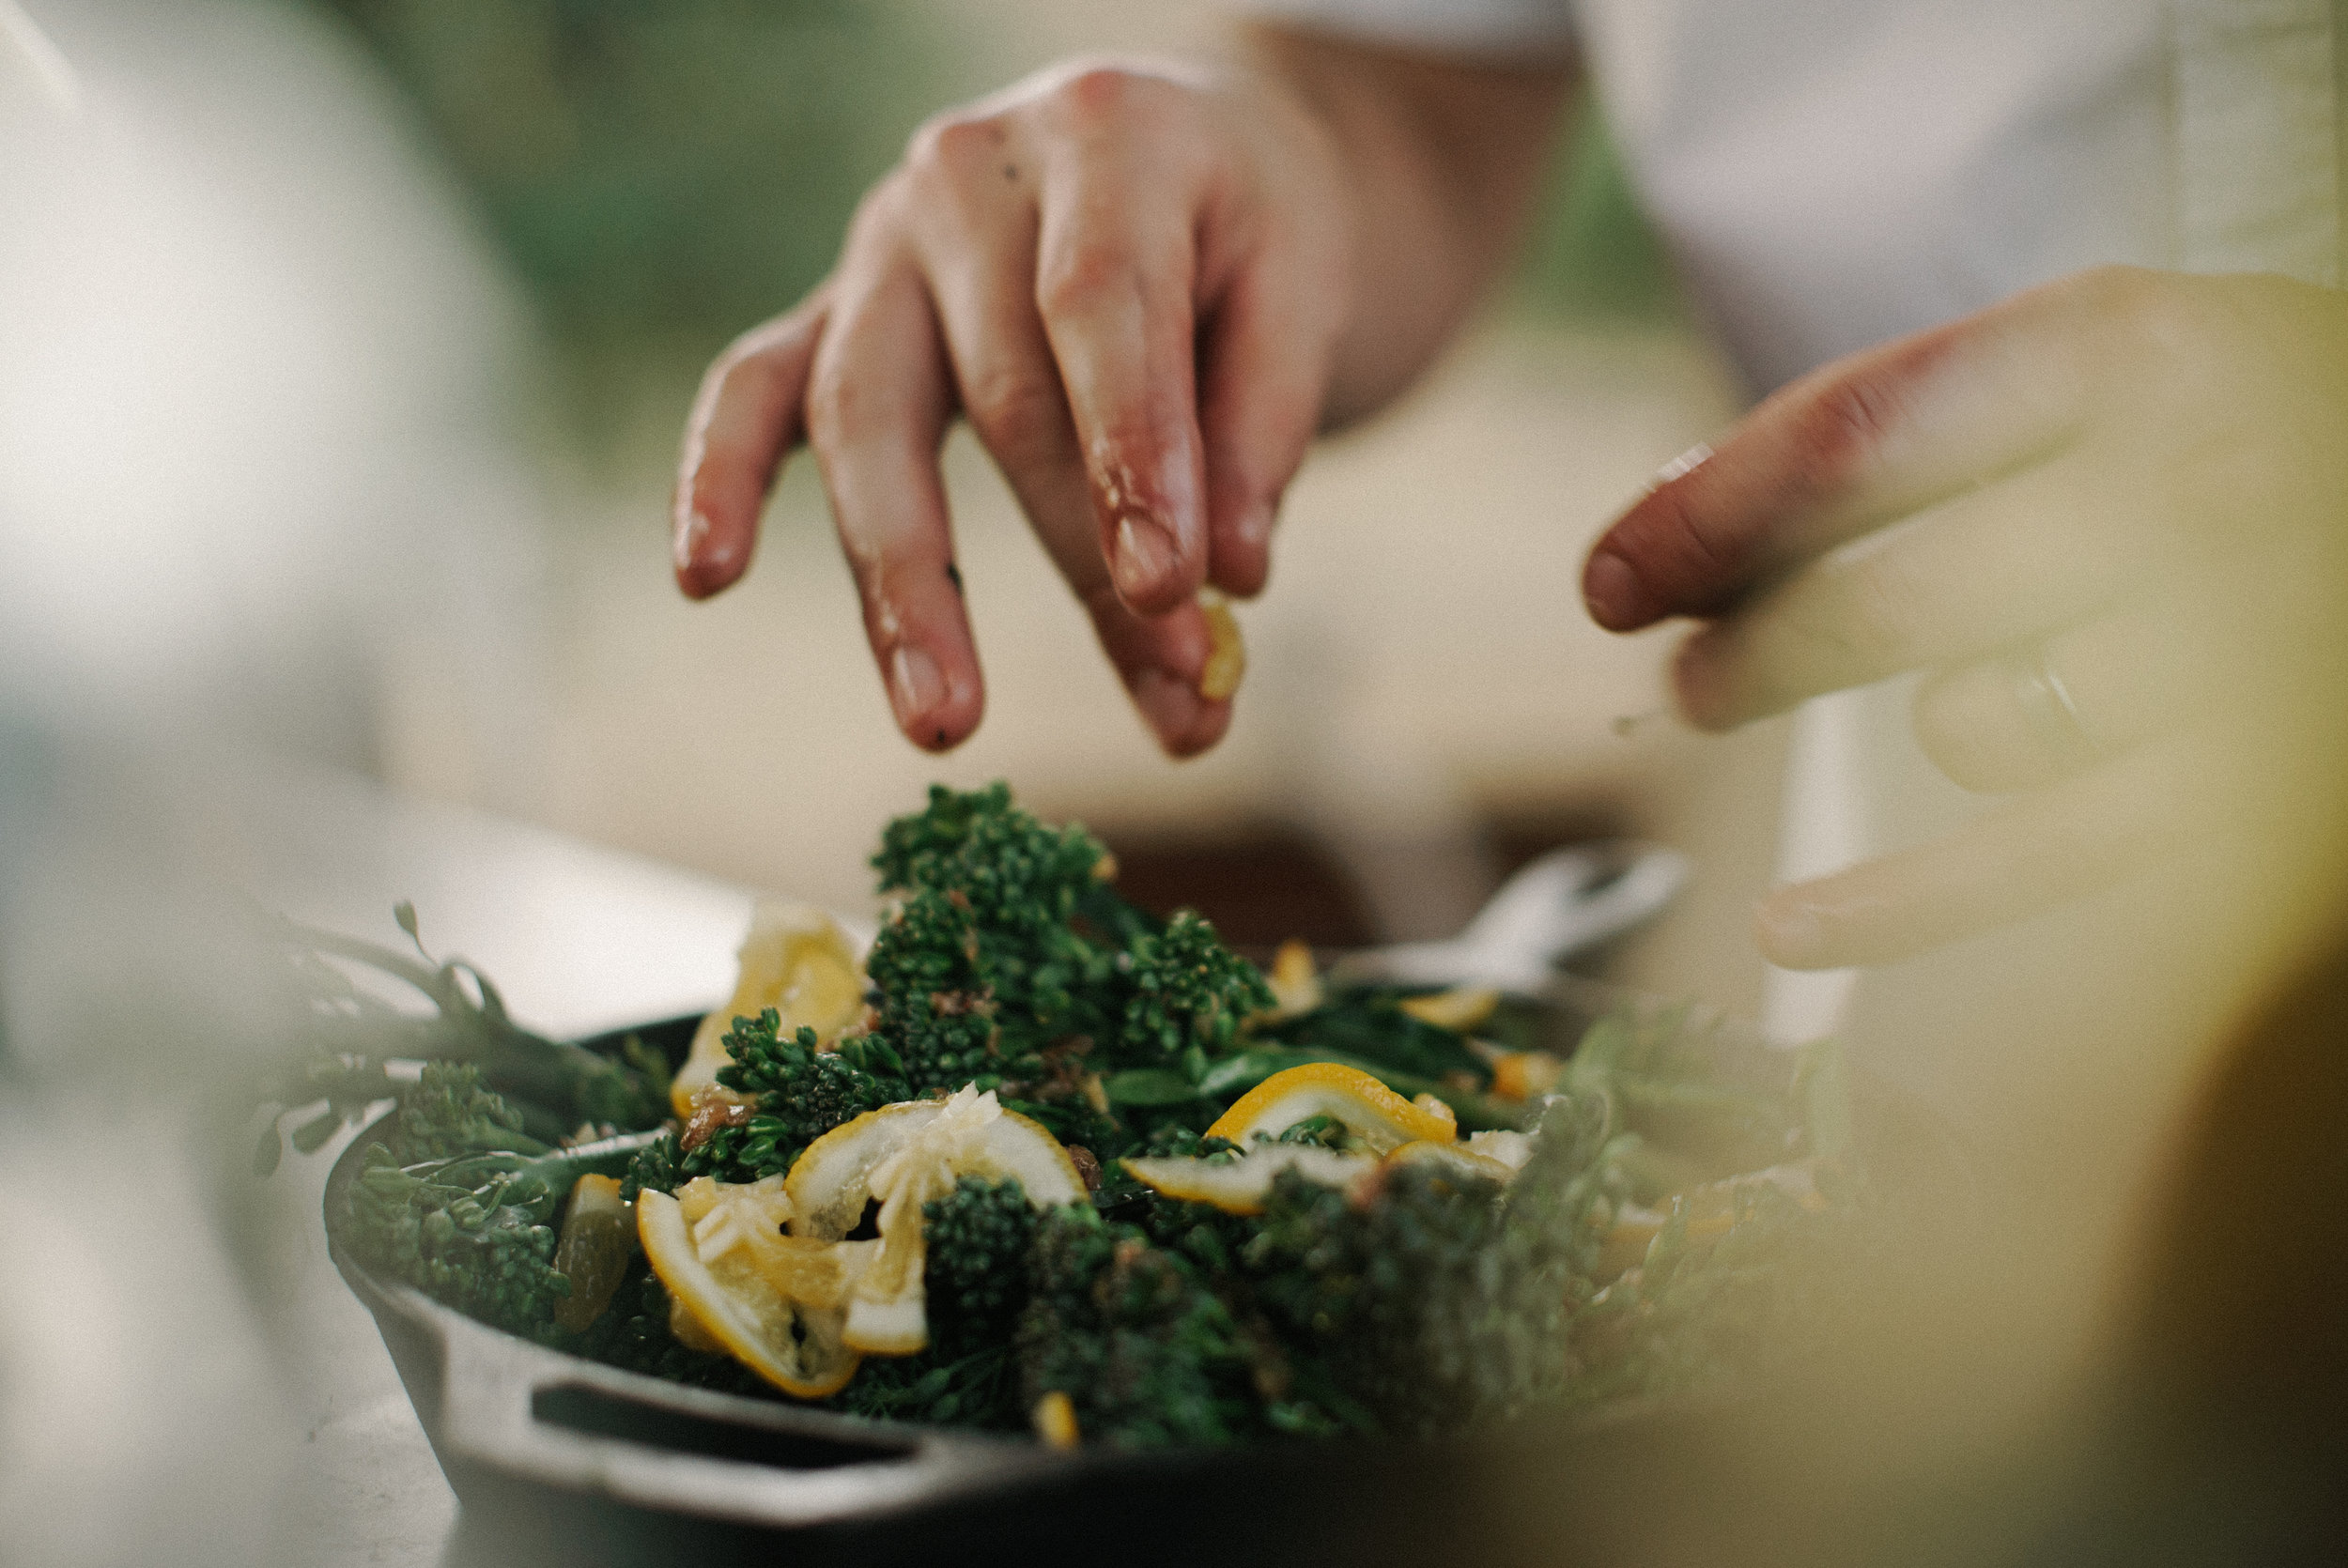 Who is this for? - This course is ideal for the home cook who is looking to get more from their cookery and learn new tricks and techniques as well as discovering a wider range of cuisines and ingredients.Or maybe you are thinking about a career in food and drink? This is the perfect taster as you begin your culinary journey.